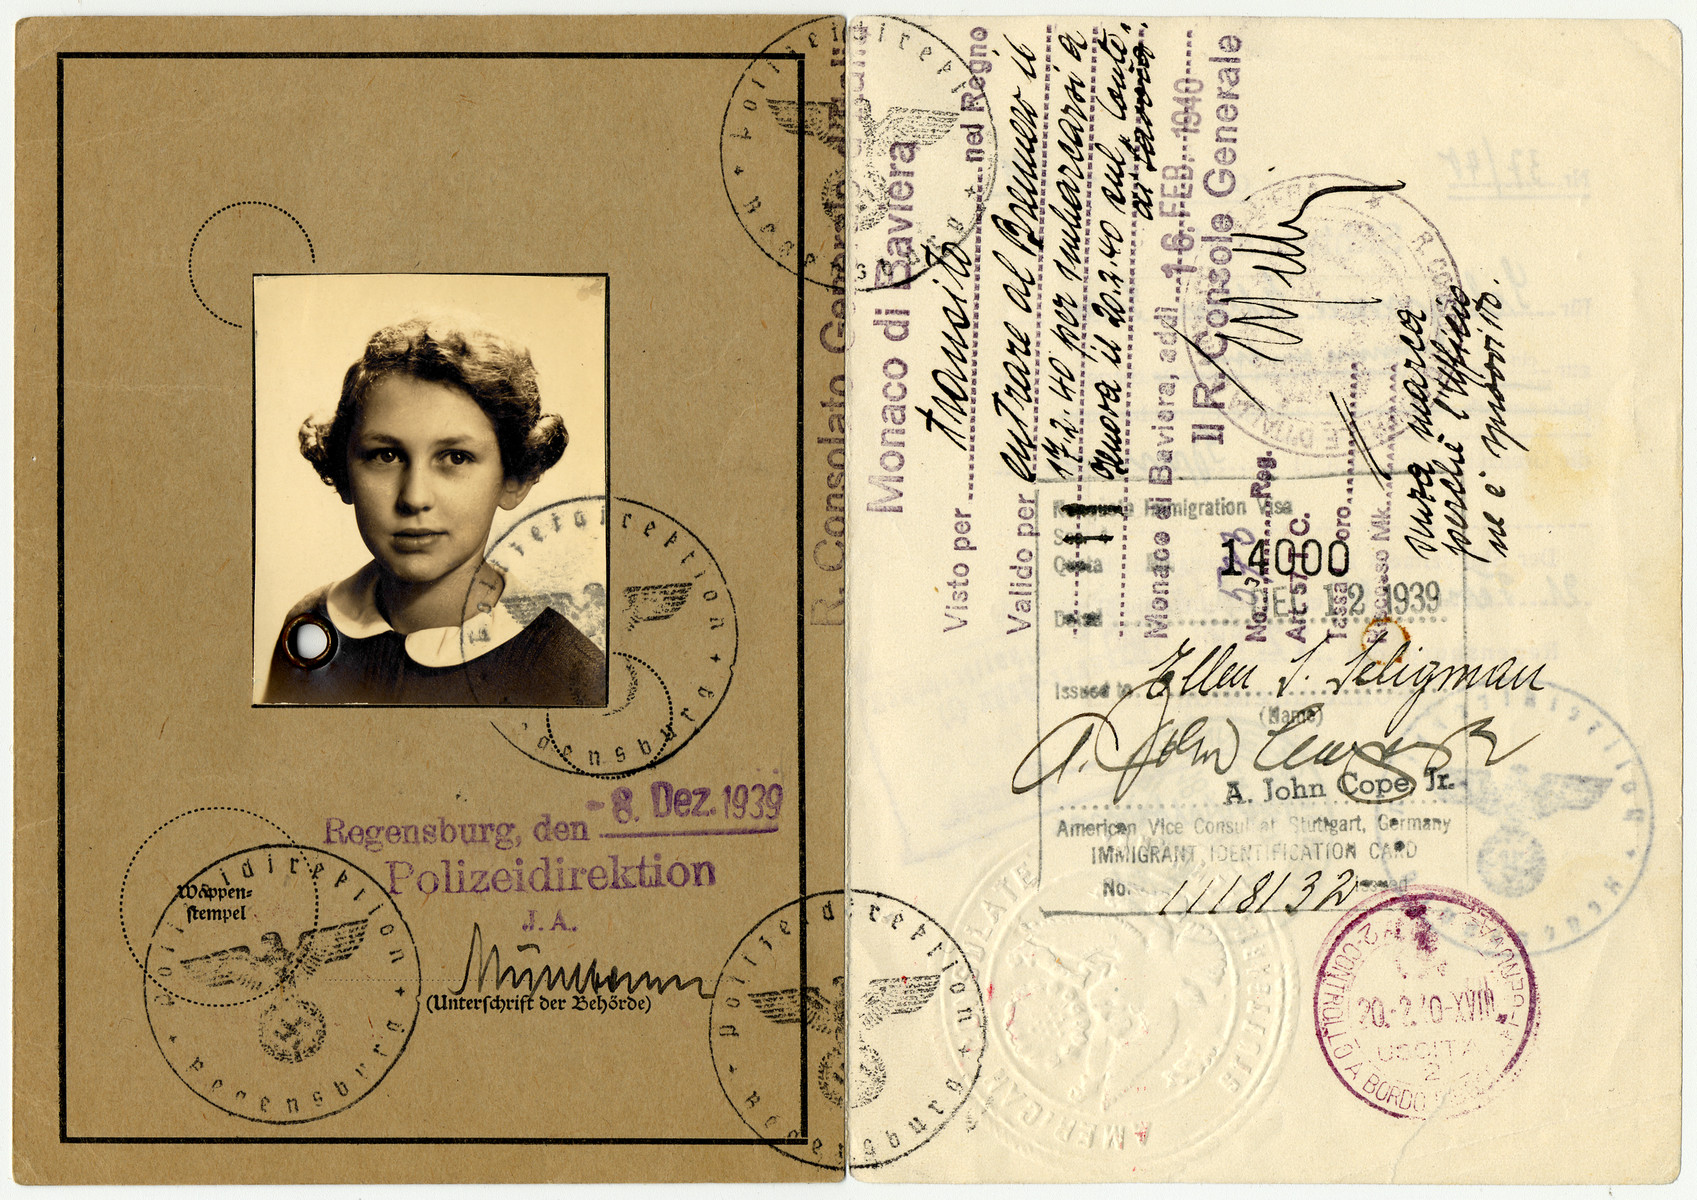 Kinderausweis (child's ID card) issued to Ellen Sara Seligman.   This card includes a transit visa allowing her to cross from Germany into Italy via the Brenner Pass, in order to go to the United States.